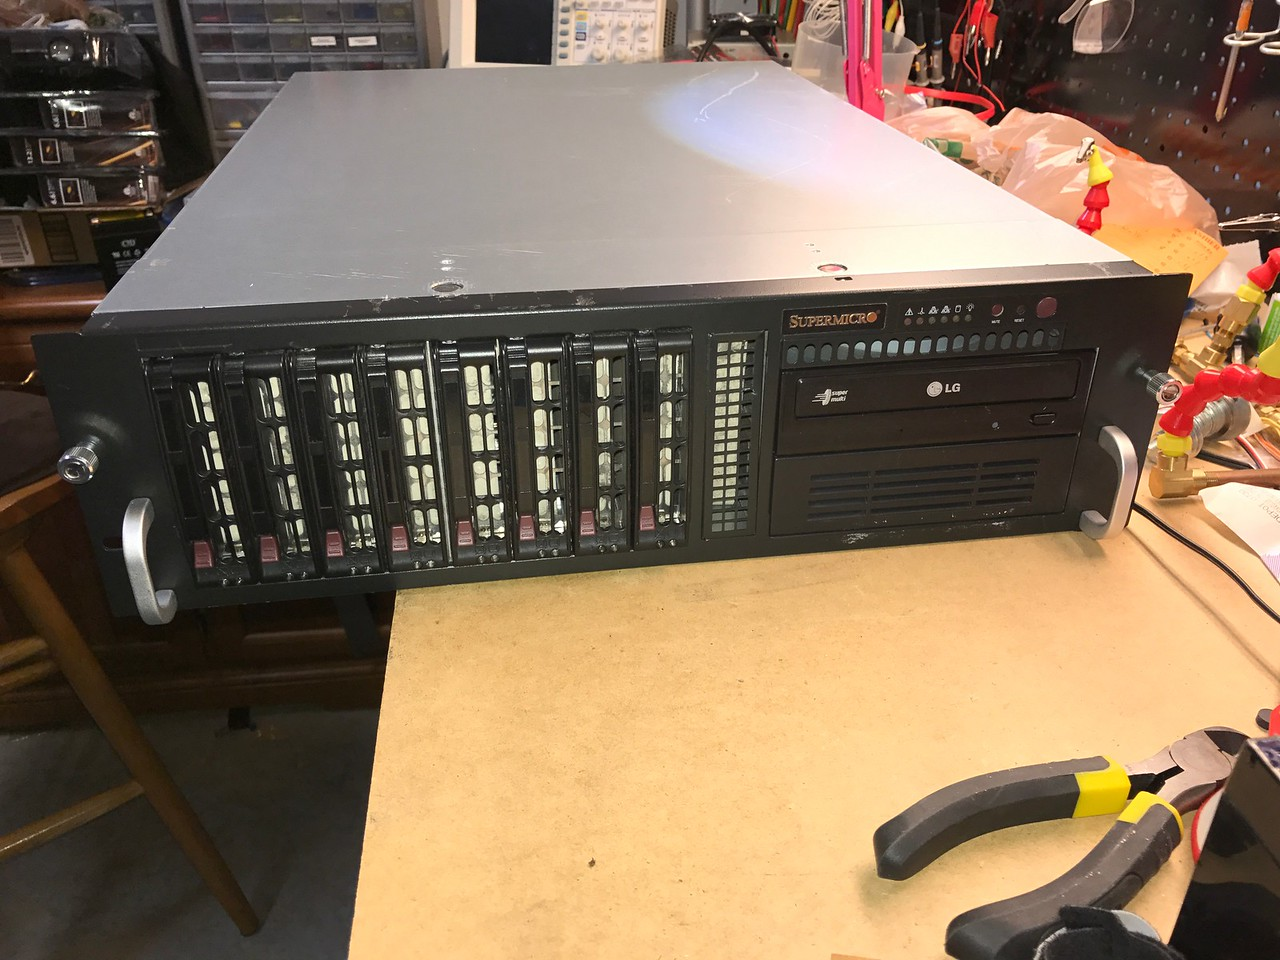 Supermicro SC-833 3U rackmount chassis